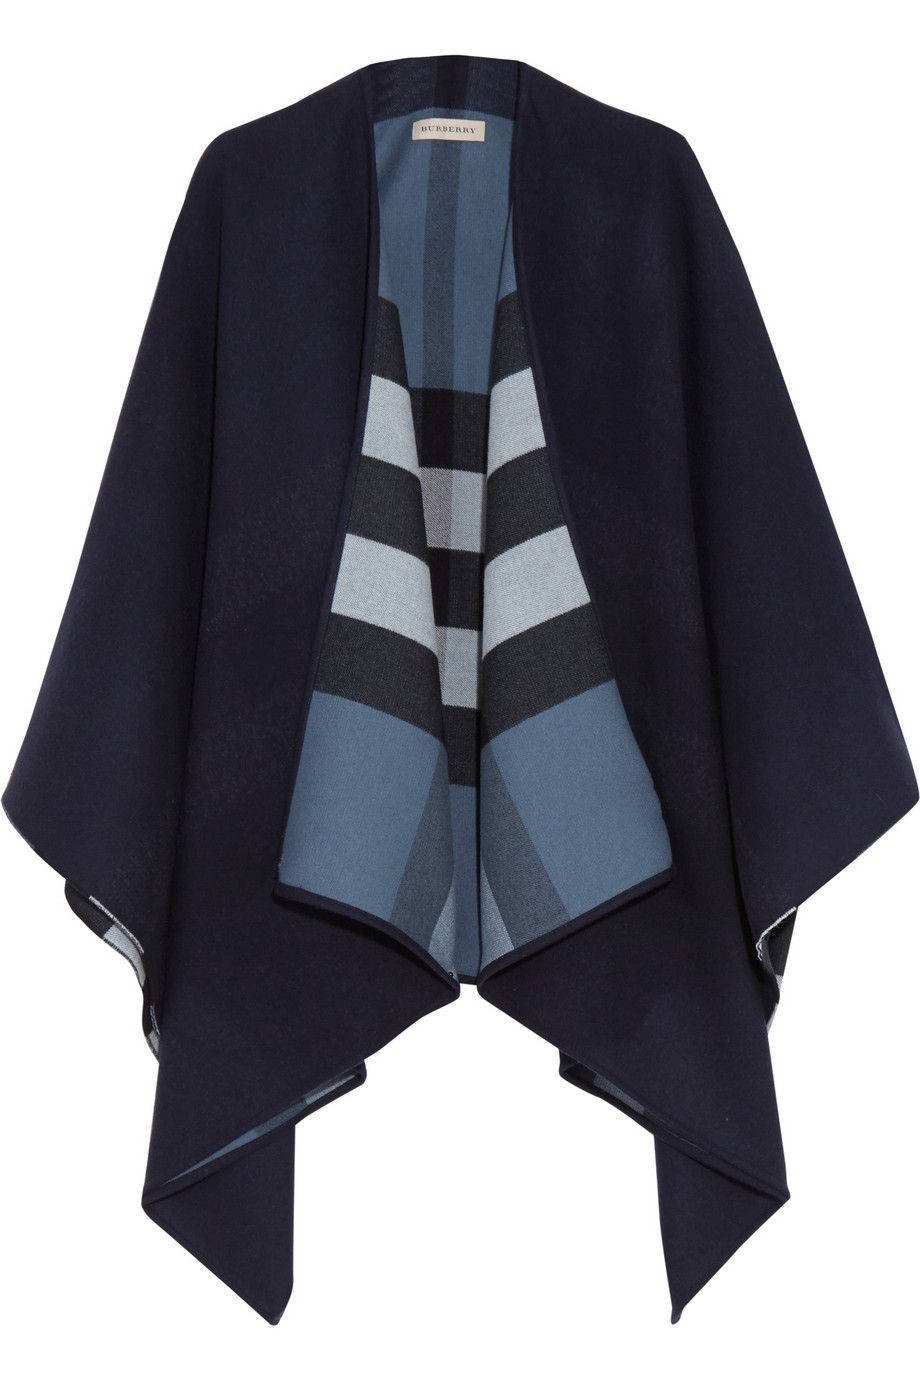 Burberry London | London checked merino wool cape